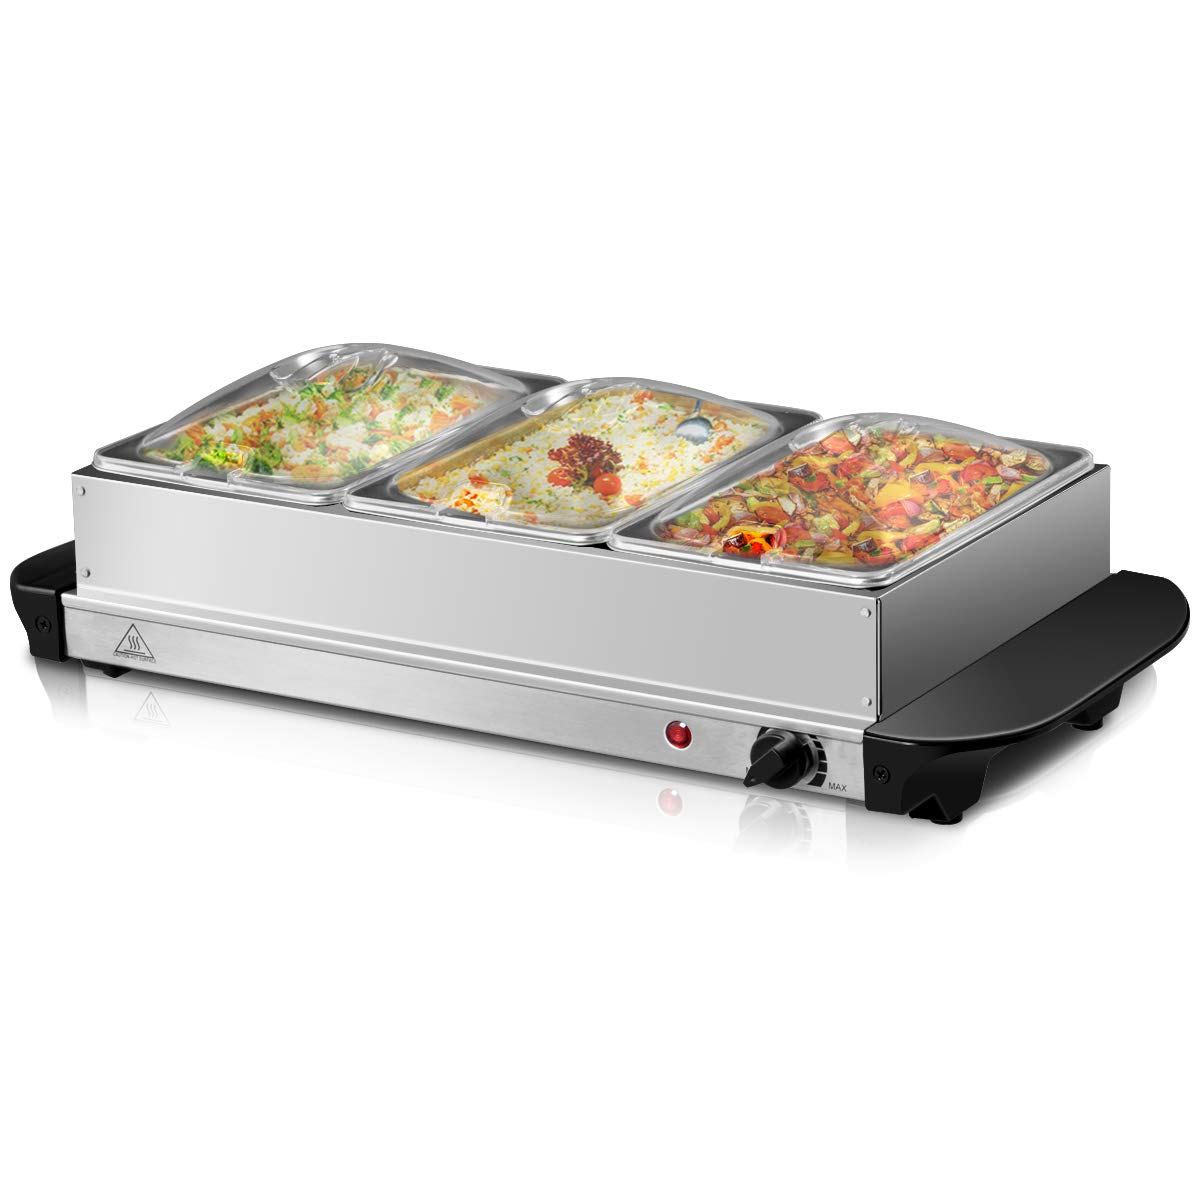 Giantex 3 Tray Buffet Server Stainless Steel Hot Plate Food Warmer Chafing Dish Tabletop (2.5 Quart) by Giantex